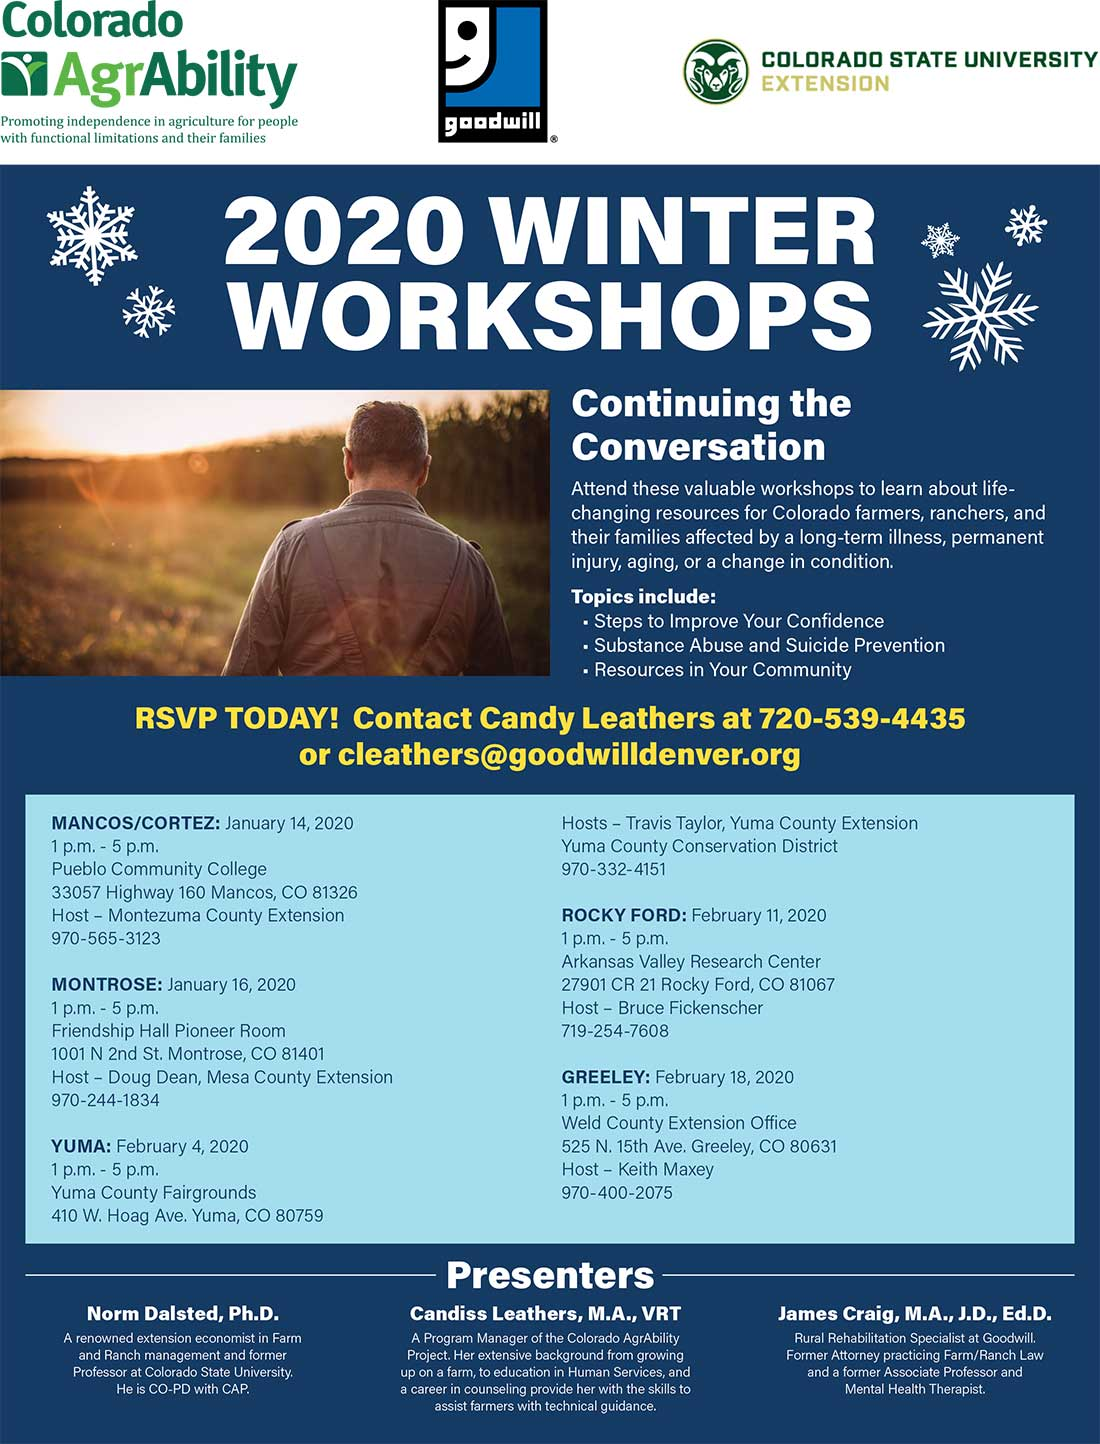 2020_AgrAbility-Winter-Workshops-Flier_8.5x11